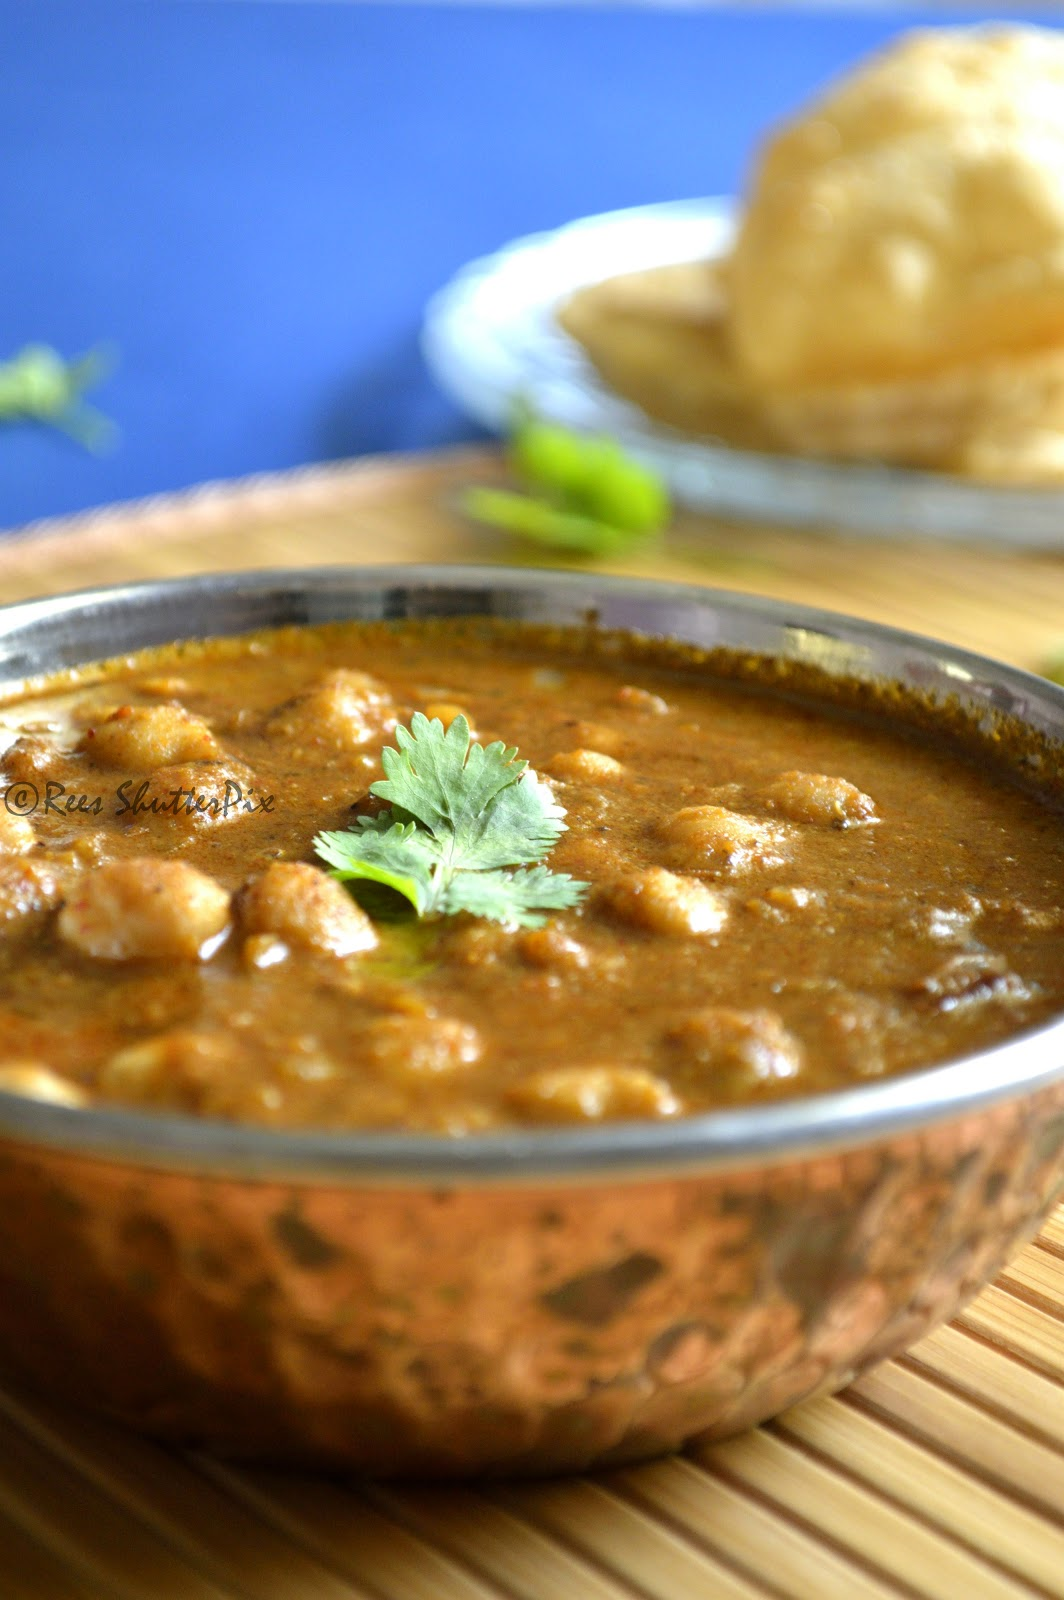 chana masala, Chickpeas Recipes, Side dish Recipes, chole masala, easy chana masala recipe for poori, chola poori masala, step by step picture recipe for chana masala, kids special recipes, Breakfast Recipes,